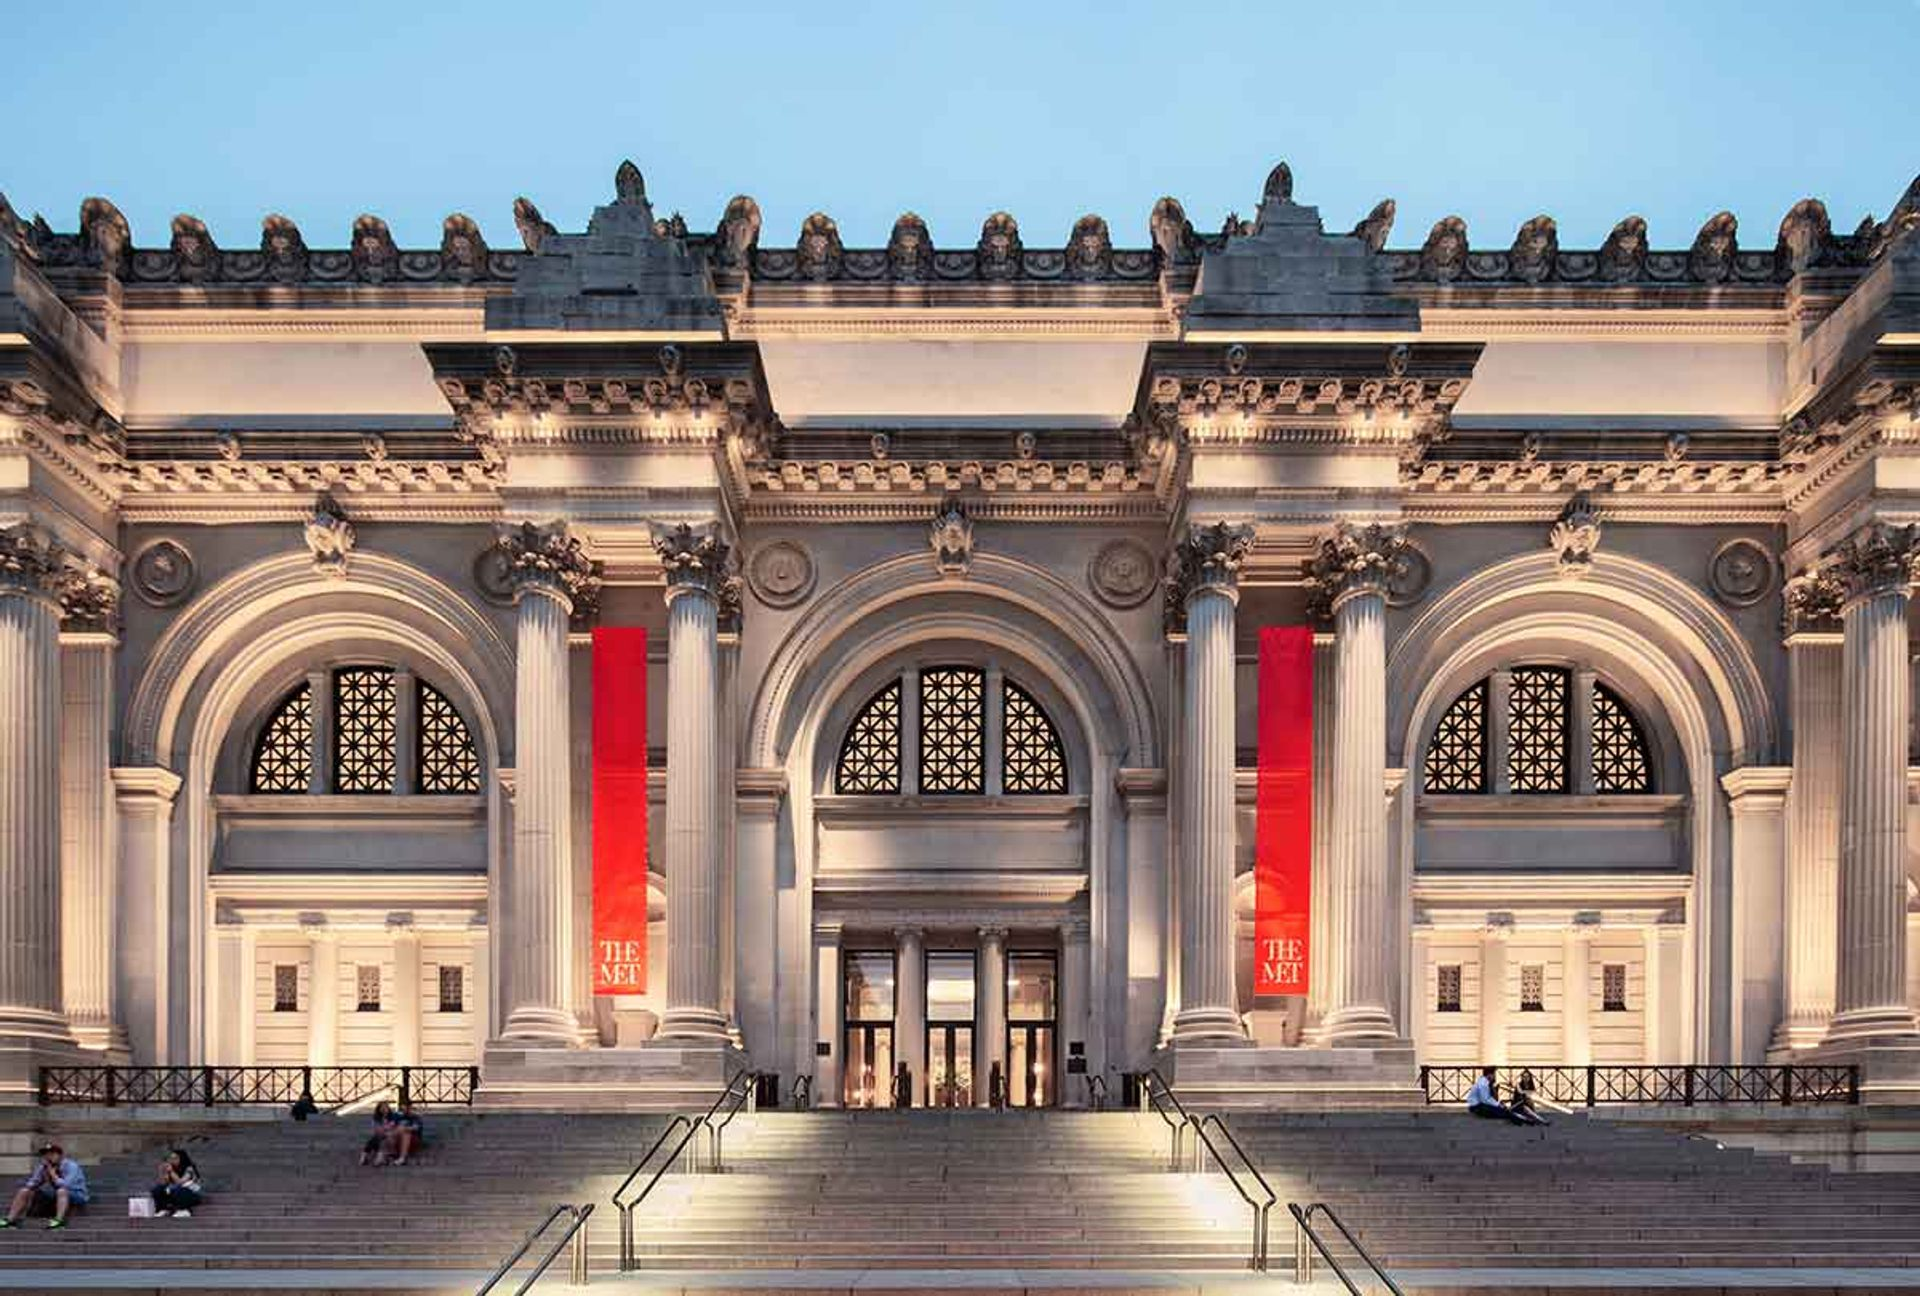 The Met's location on 5th Avenue will reopen 29 August. Courtesy of the Metropolitan Museum of Art